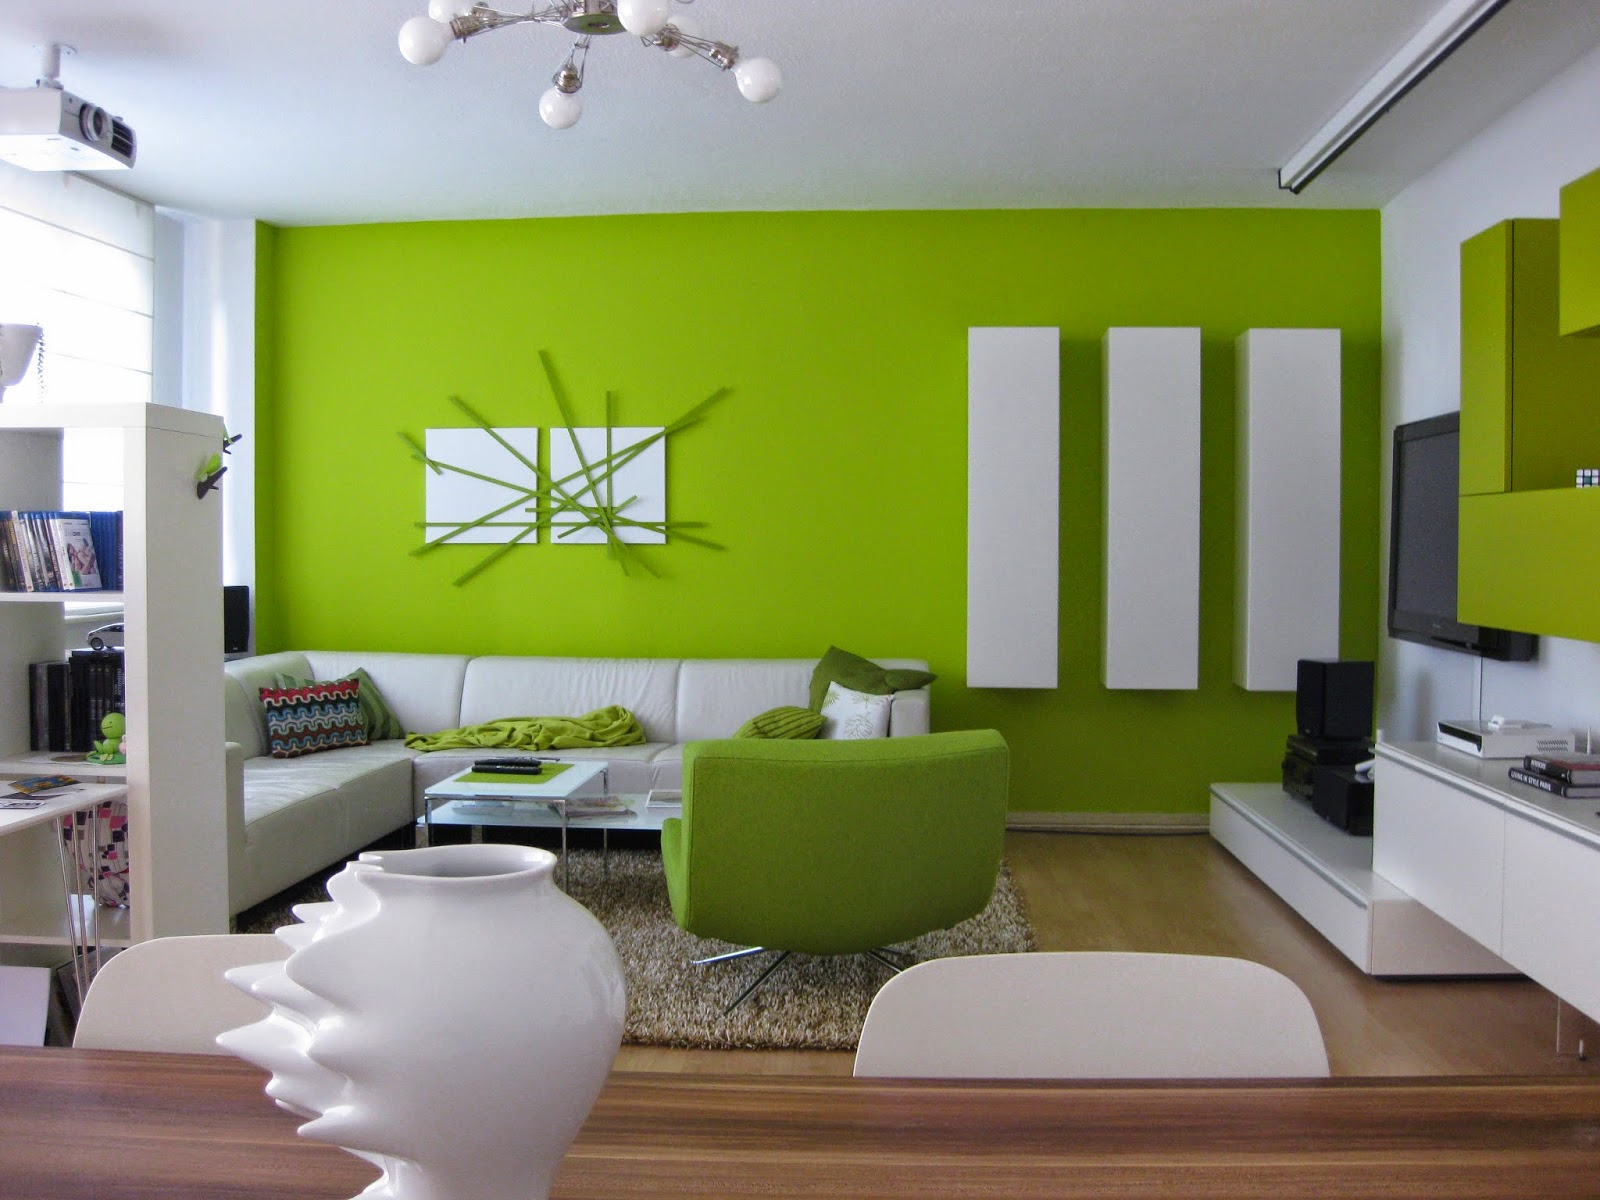 Fotos de sala en color verde salas con estilo for Colores para decorar una casa